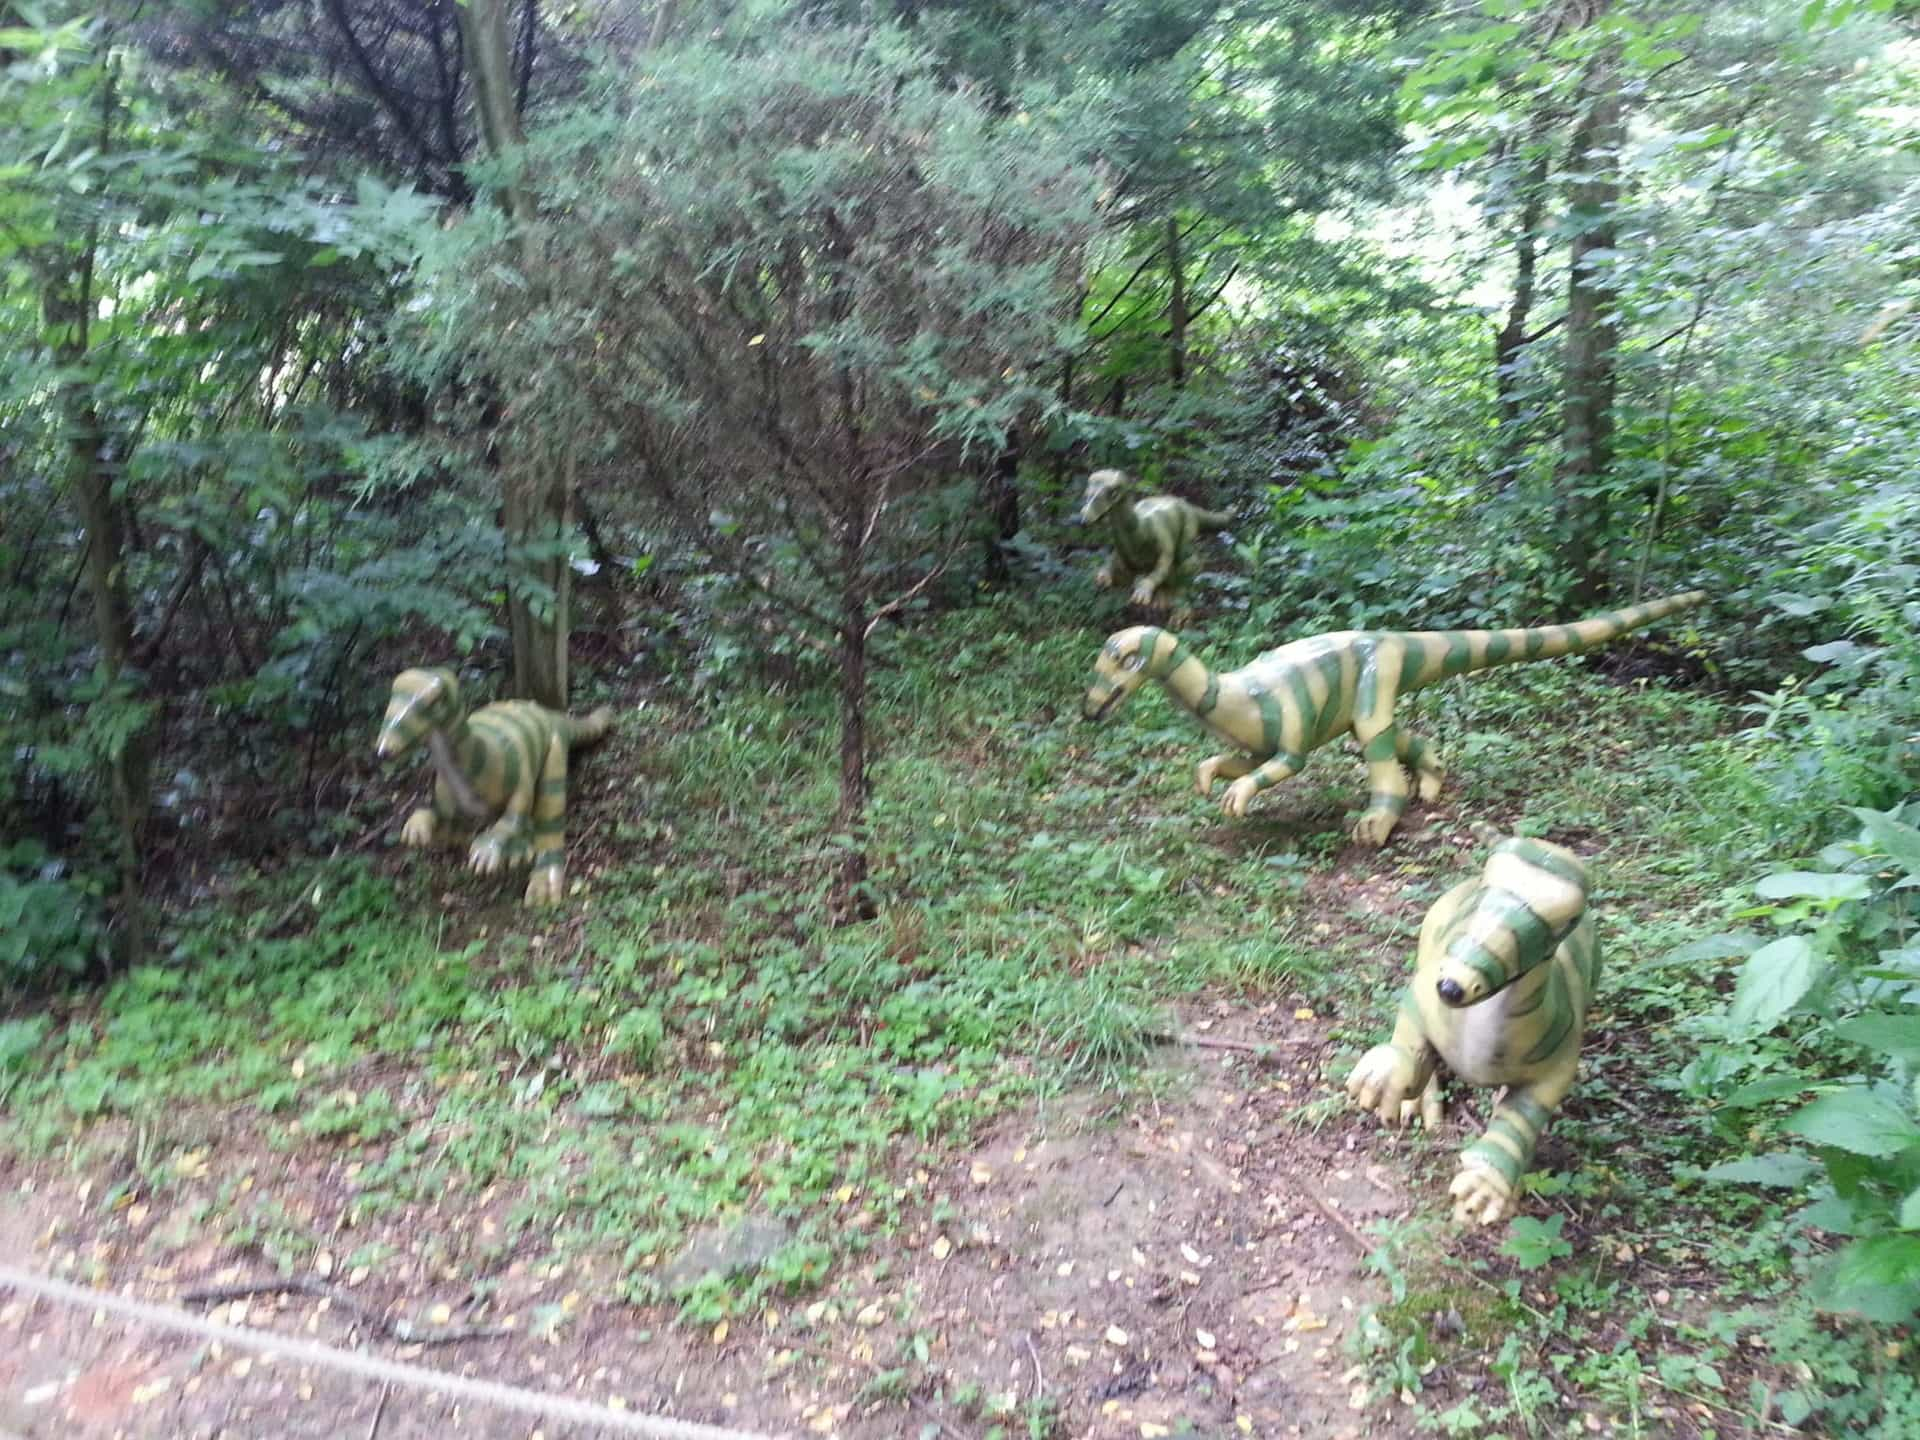 Dinosaur World - Small Dinosaurs in the bushes